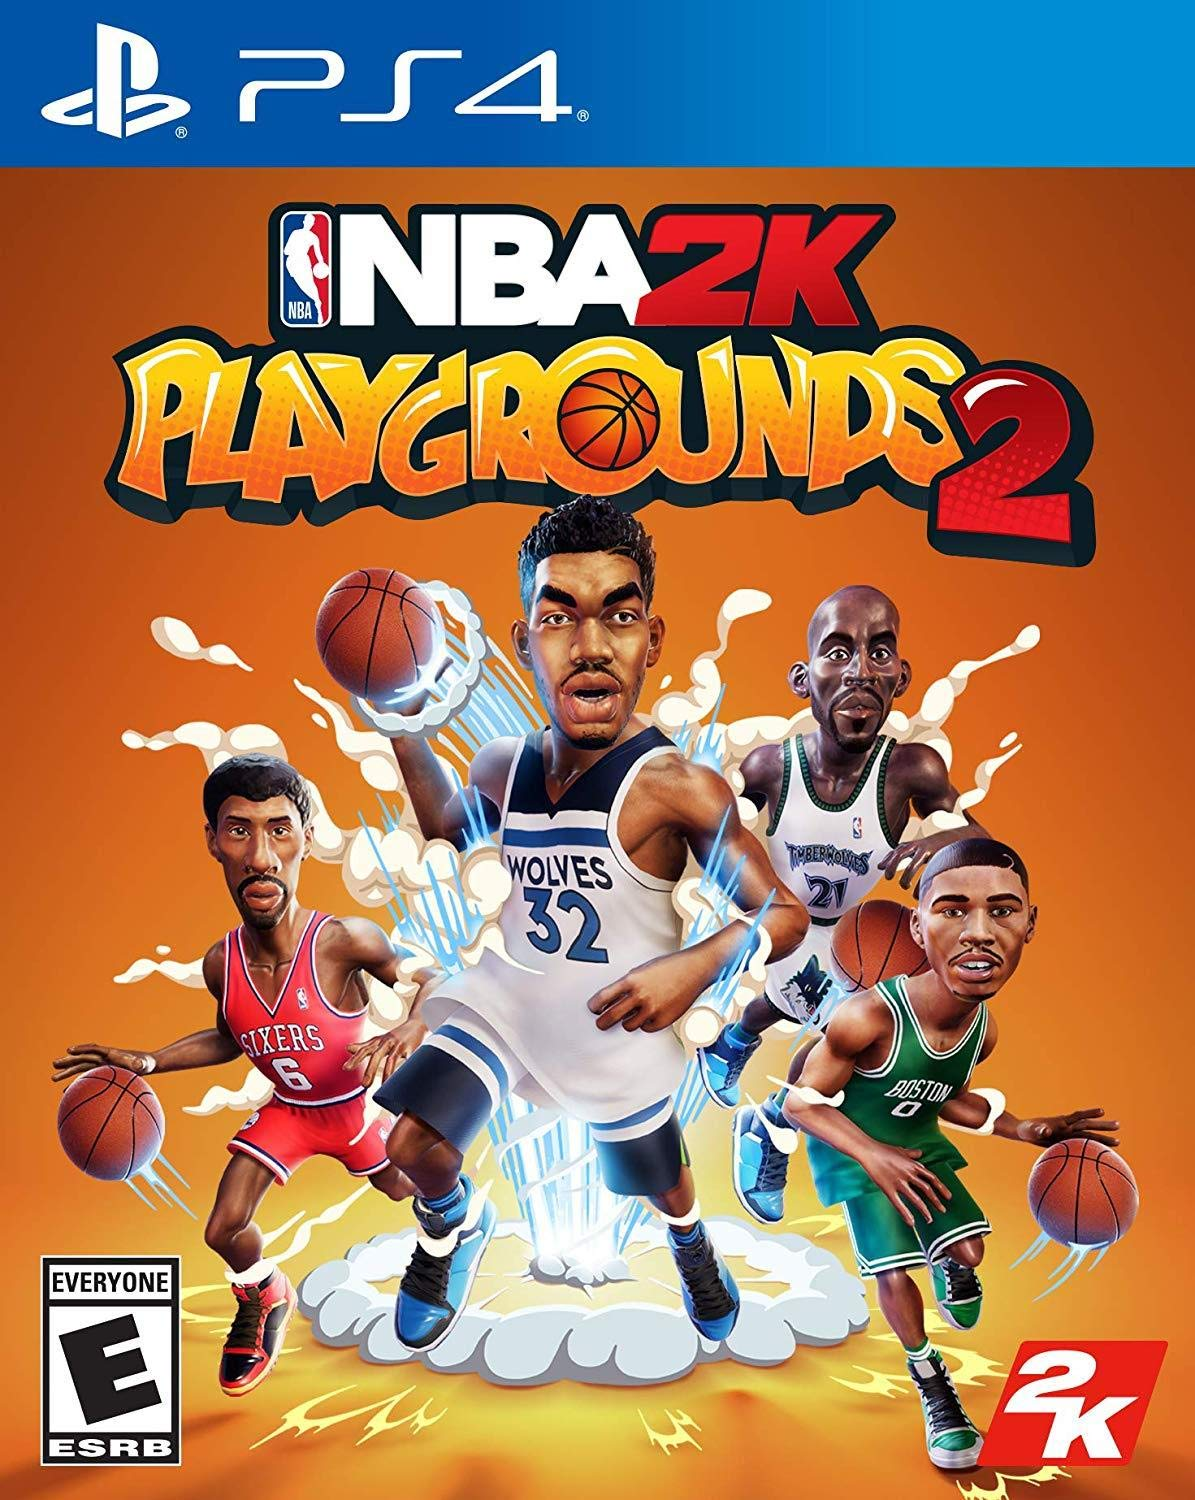 Nba 2K Playgrounds 2 - PlayStation 4 by 2K